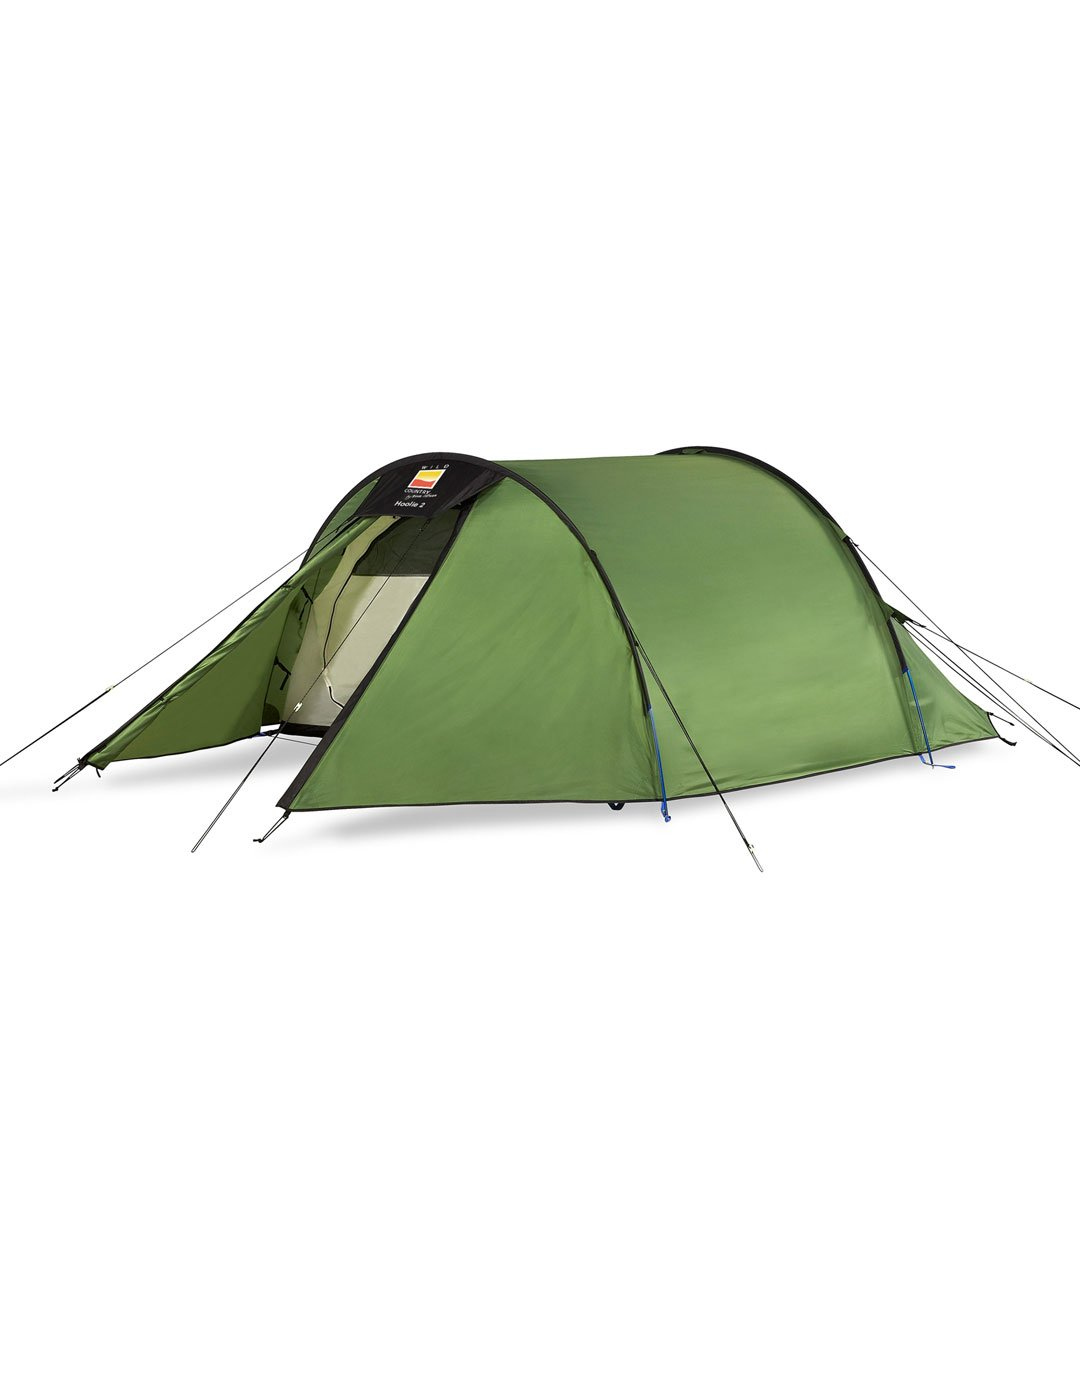 WILD COUNTRY HOOLIE 2 TENT (2 PERSON)